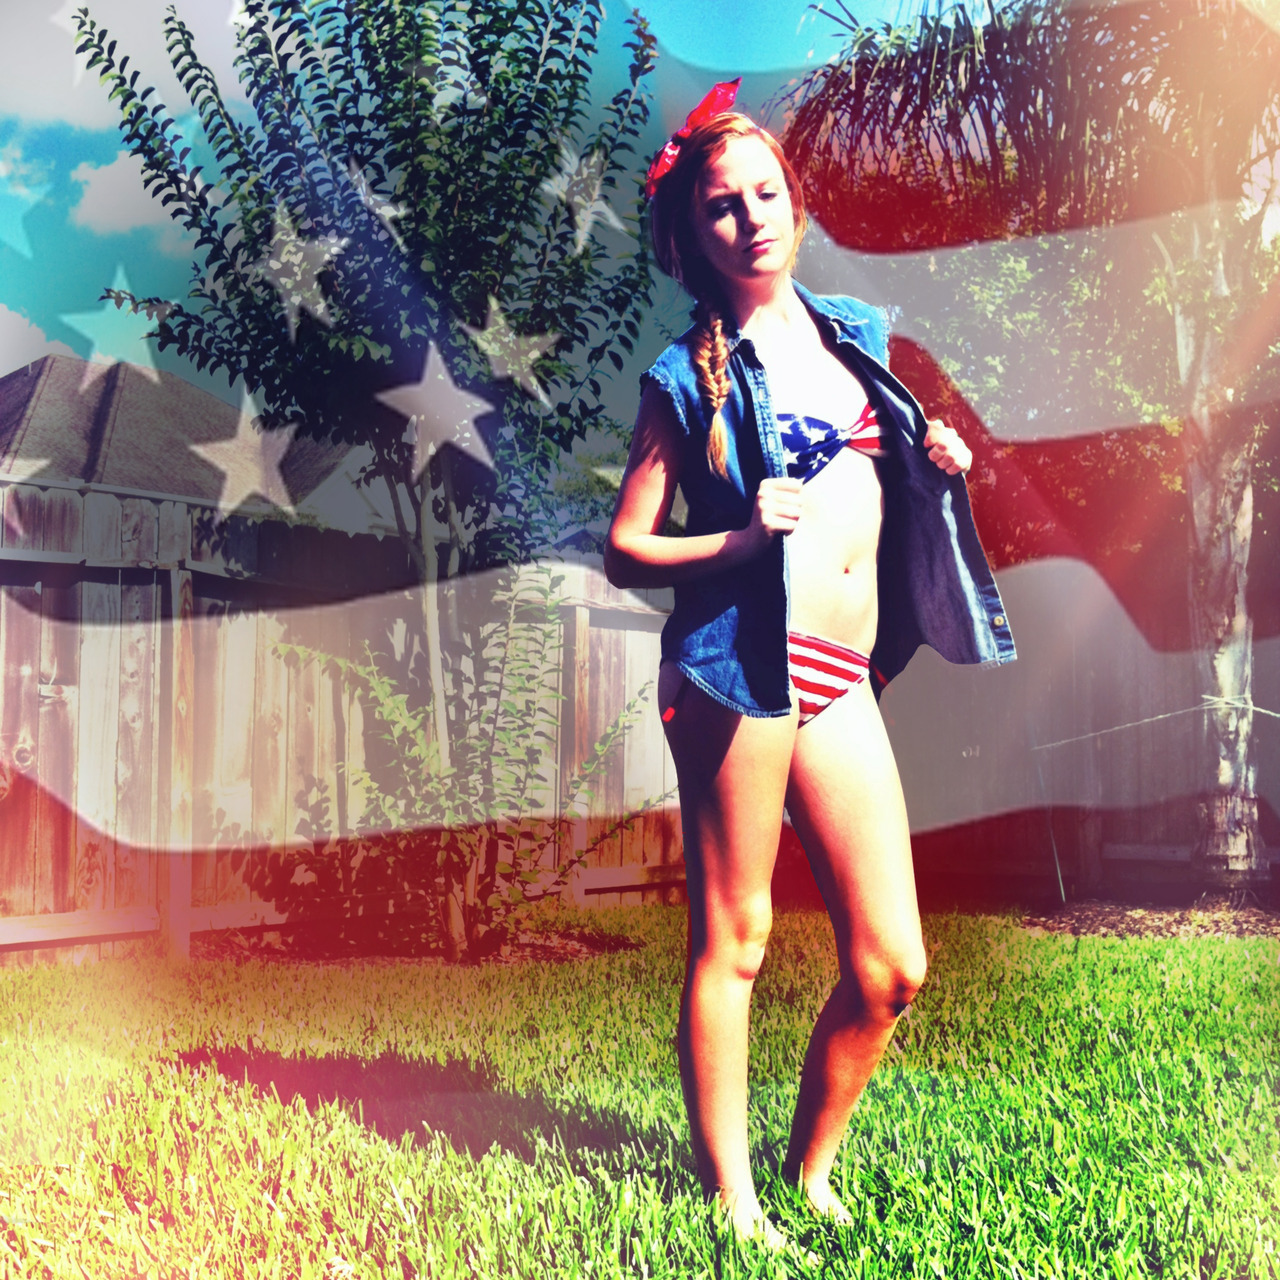 Land of the free, home of the brave Shelby Rose photography/design